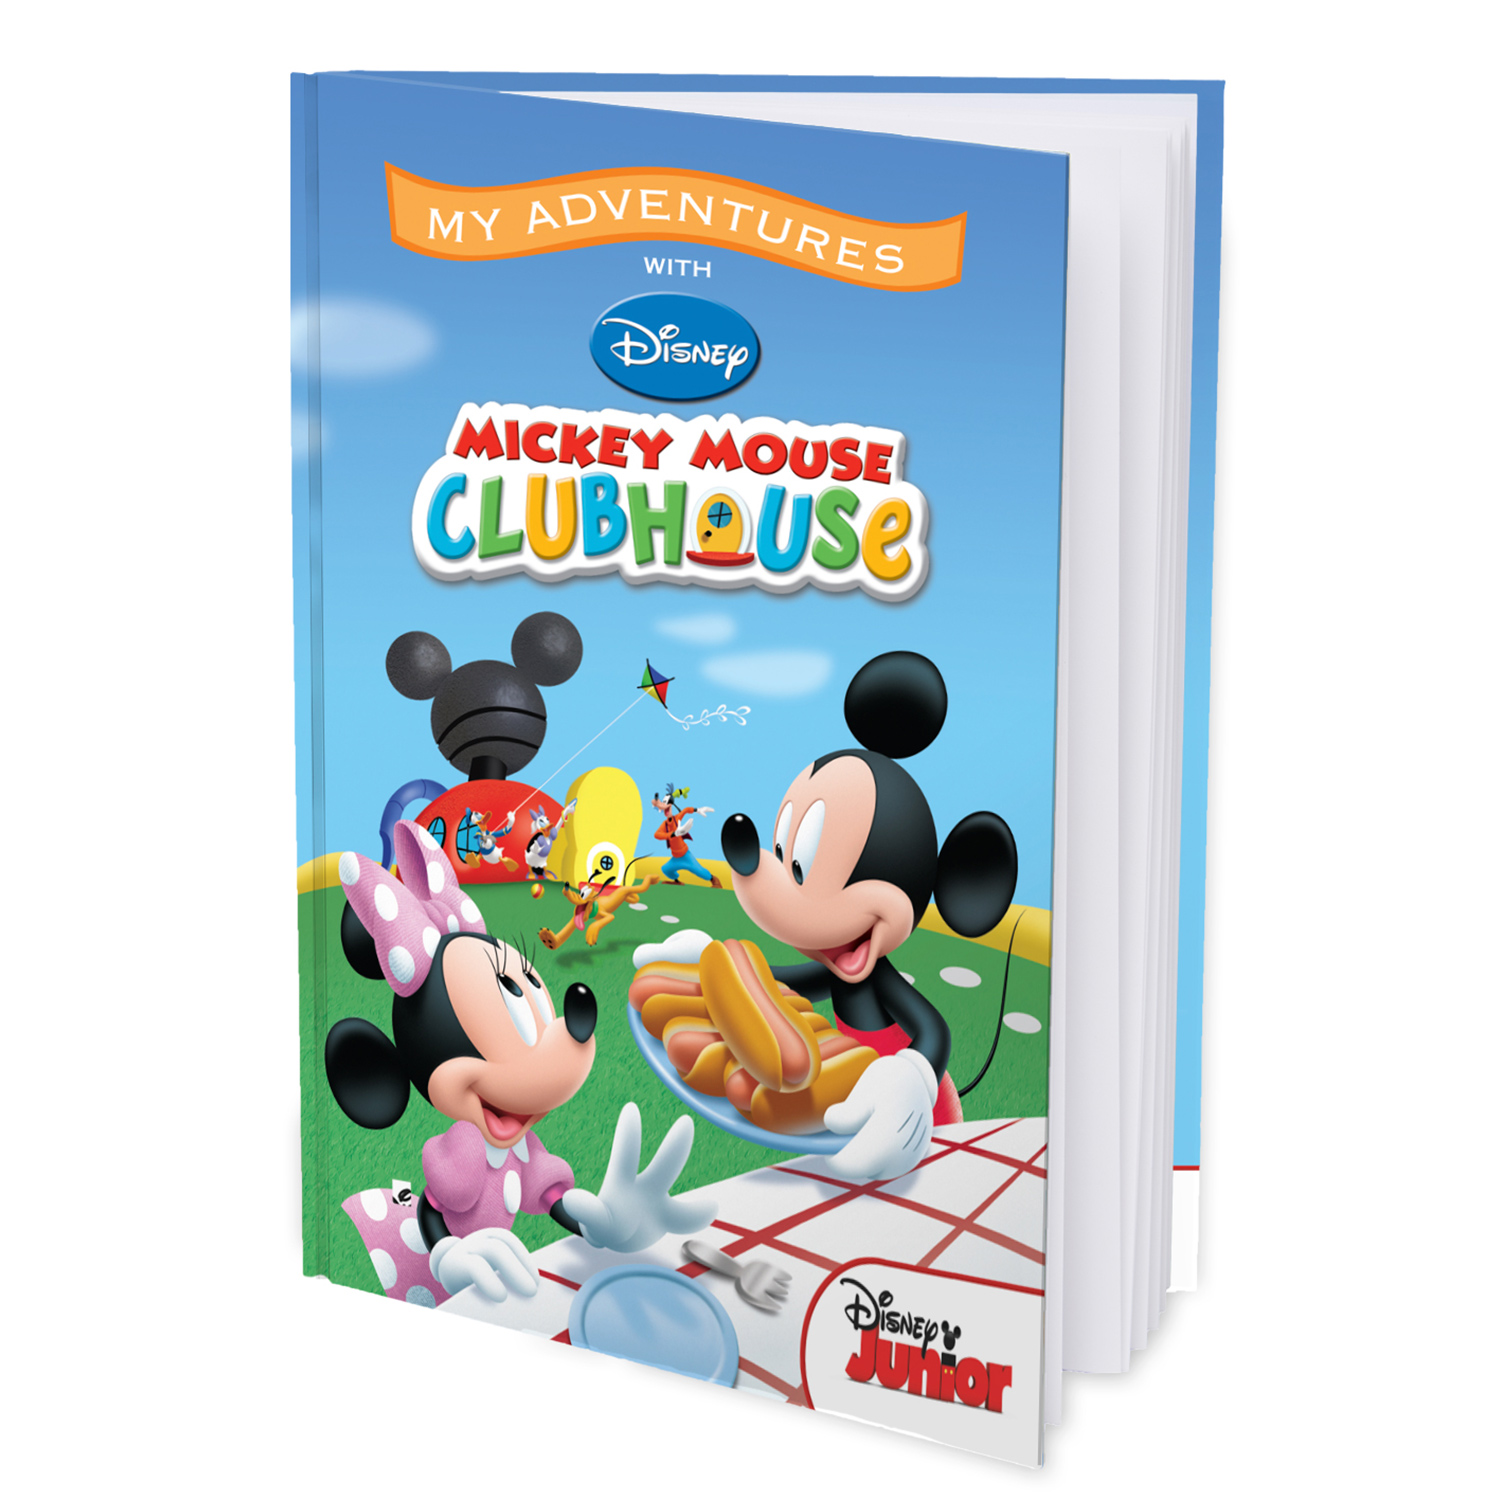 My Adventures with the Mickey Mouse Clubhouse  - 8x11 Hard Cover Book